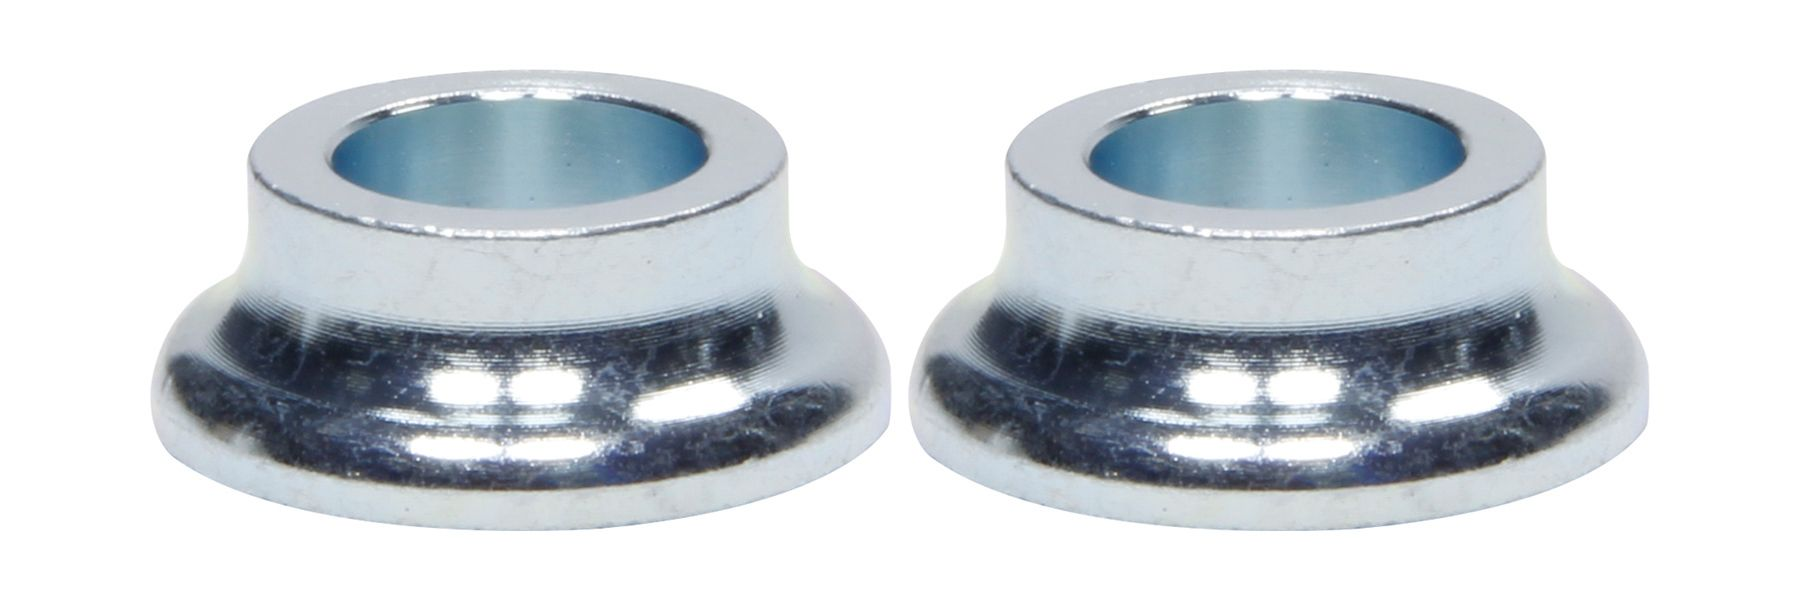 Ti22 Performance TIP8211 Cone Spacers Steel 1/2-Inch ID x 3/8-Inch Long 2-Pack